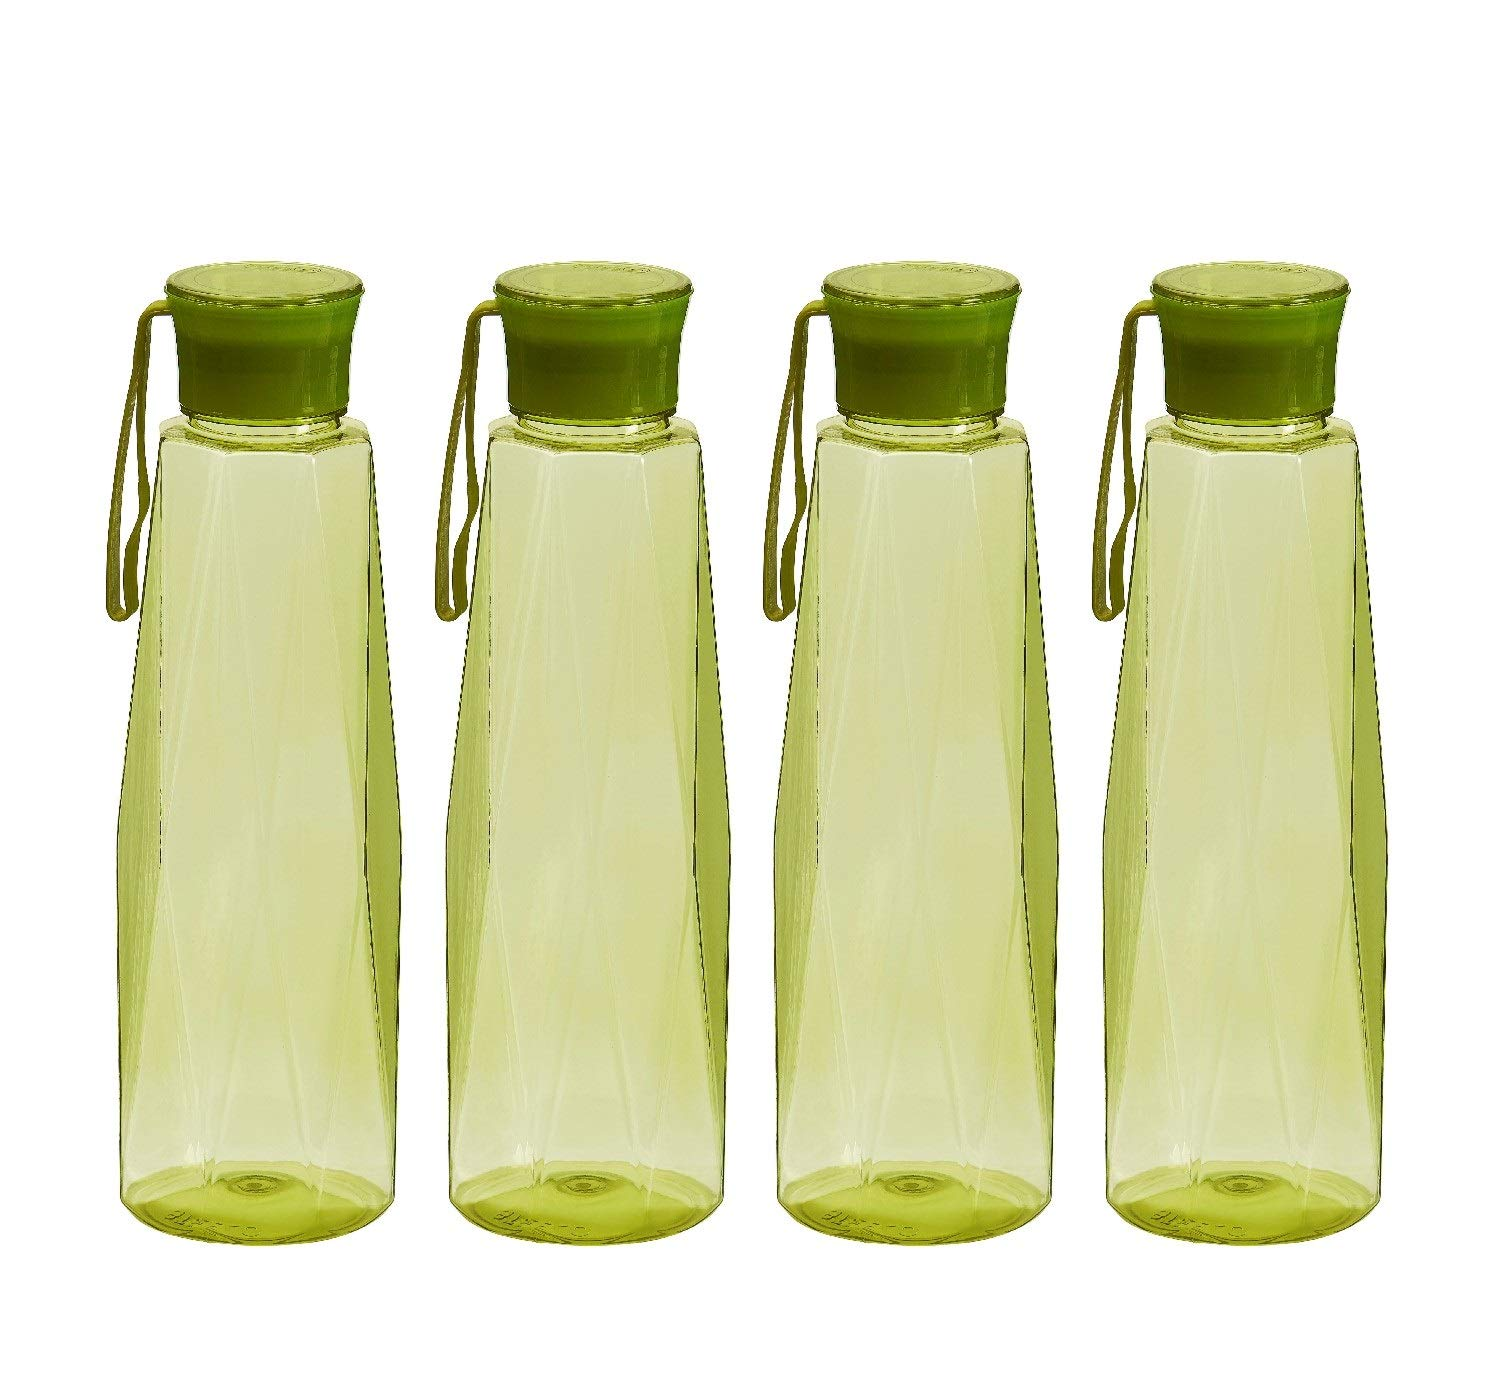 Steelo Seagul Plastic Water Bottle, 1 Litre, Set of 4, Olive Green